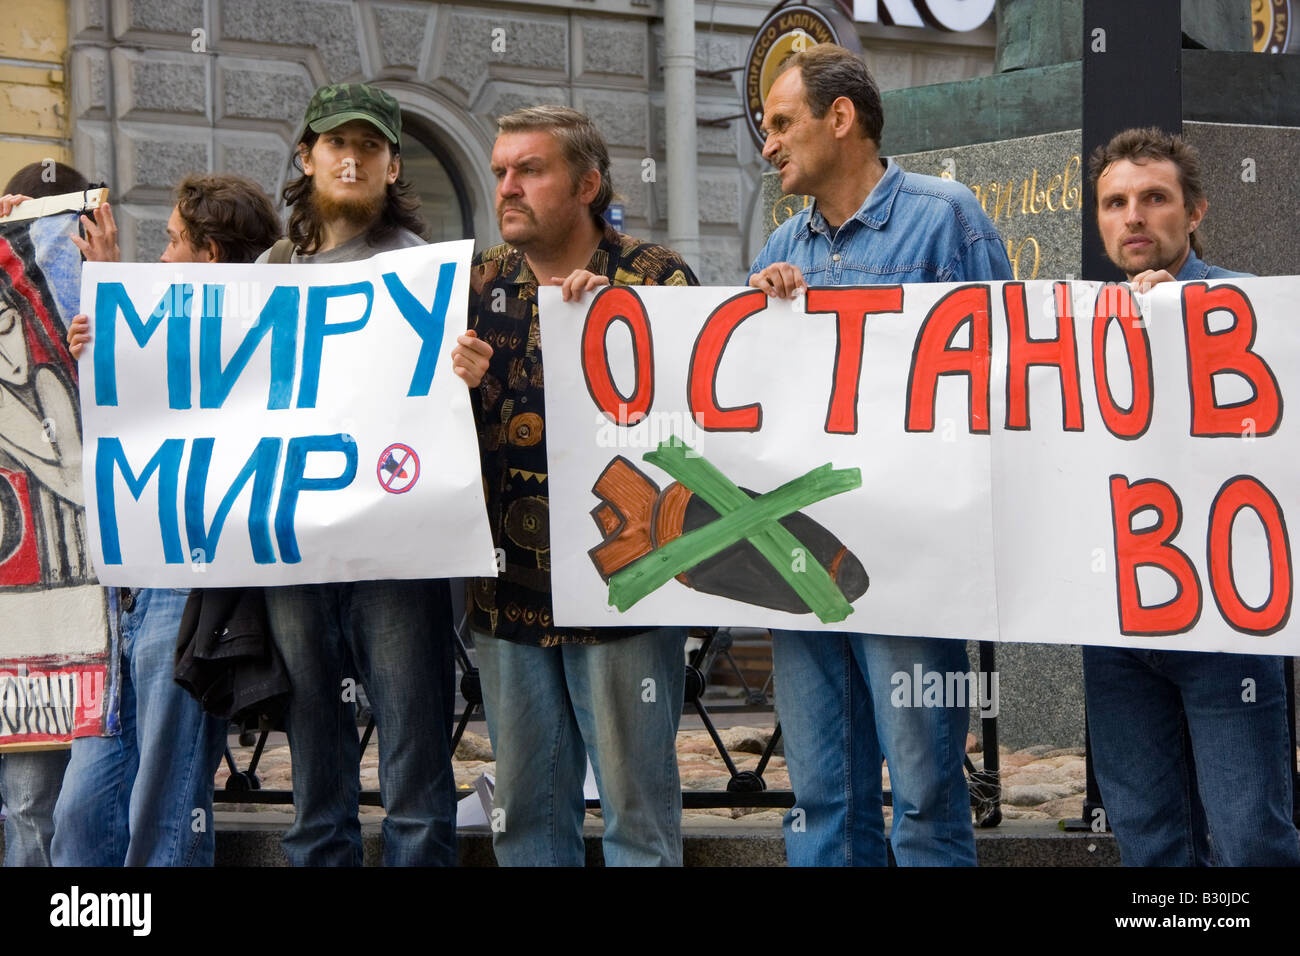 Picket against the war in Ossetia and Georgia, 12.08.2008, St.Petersburg, Russia - Stock Image